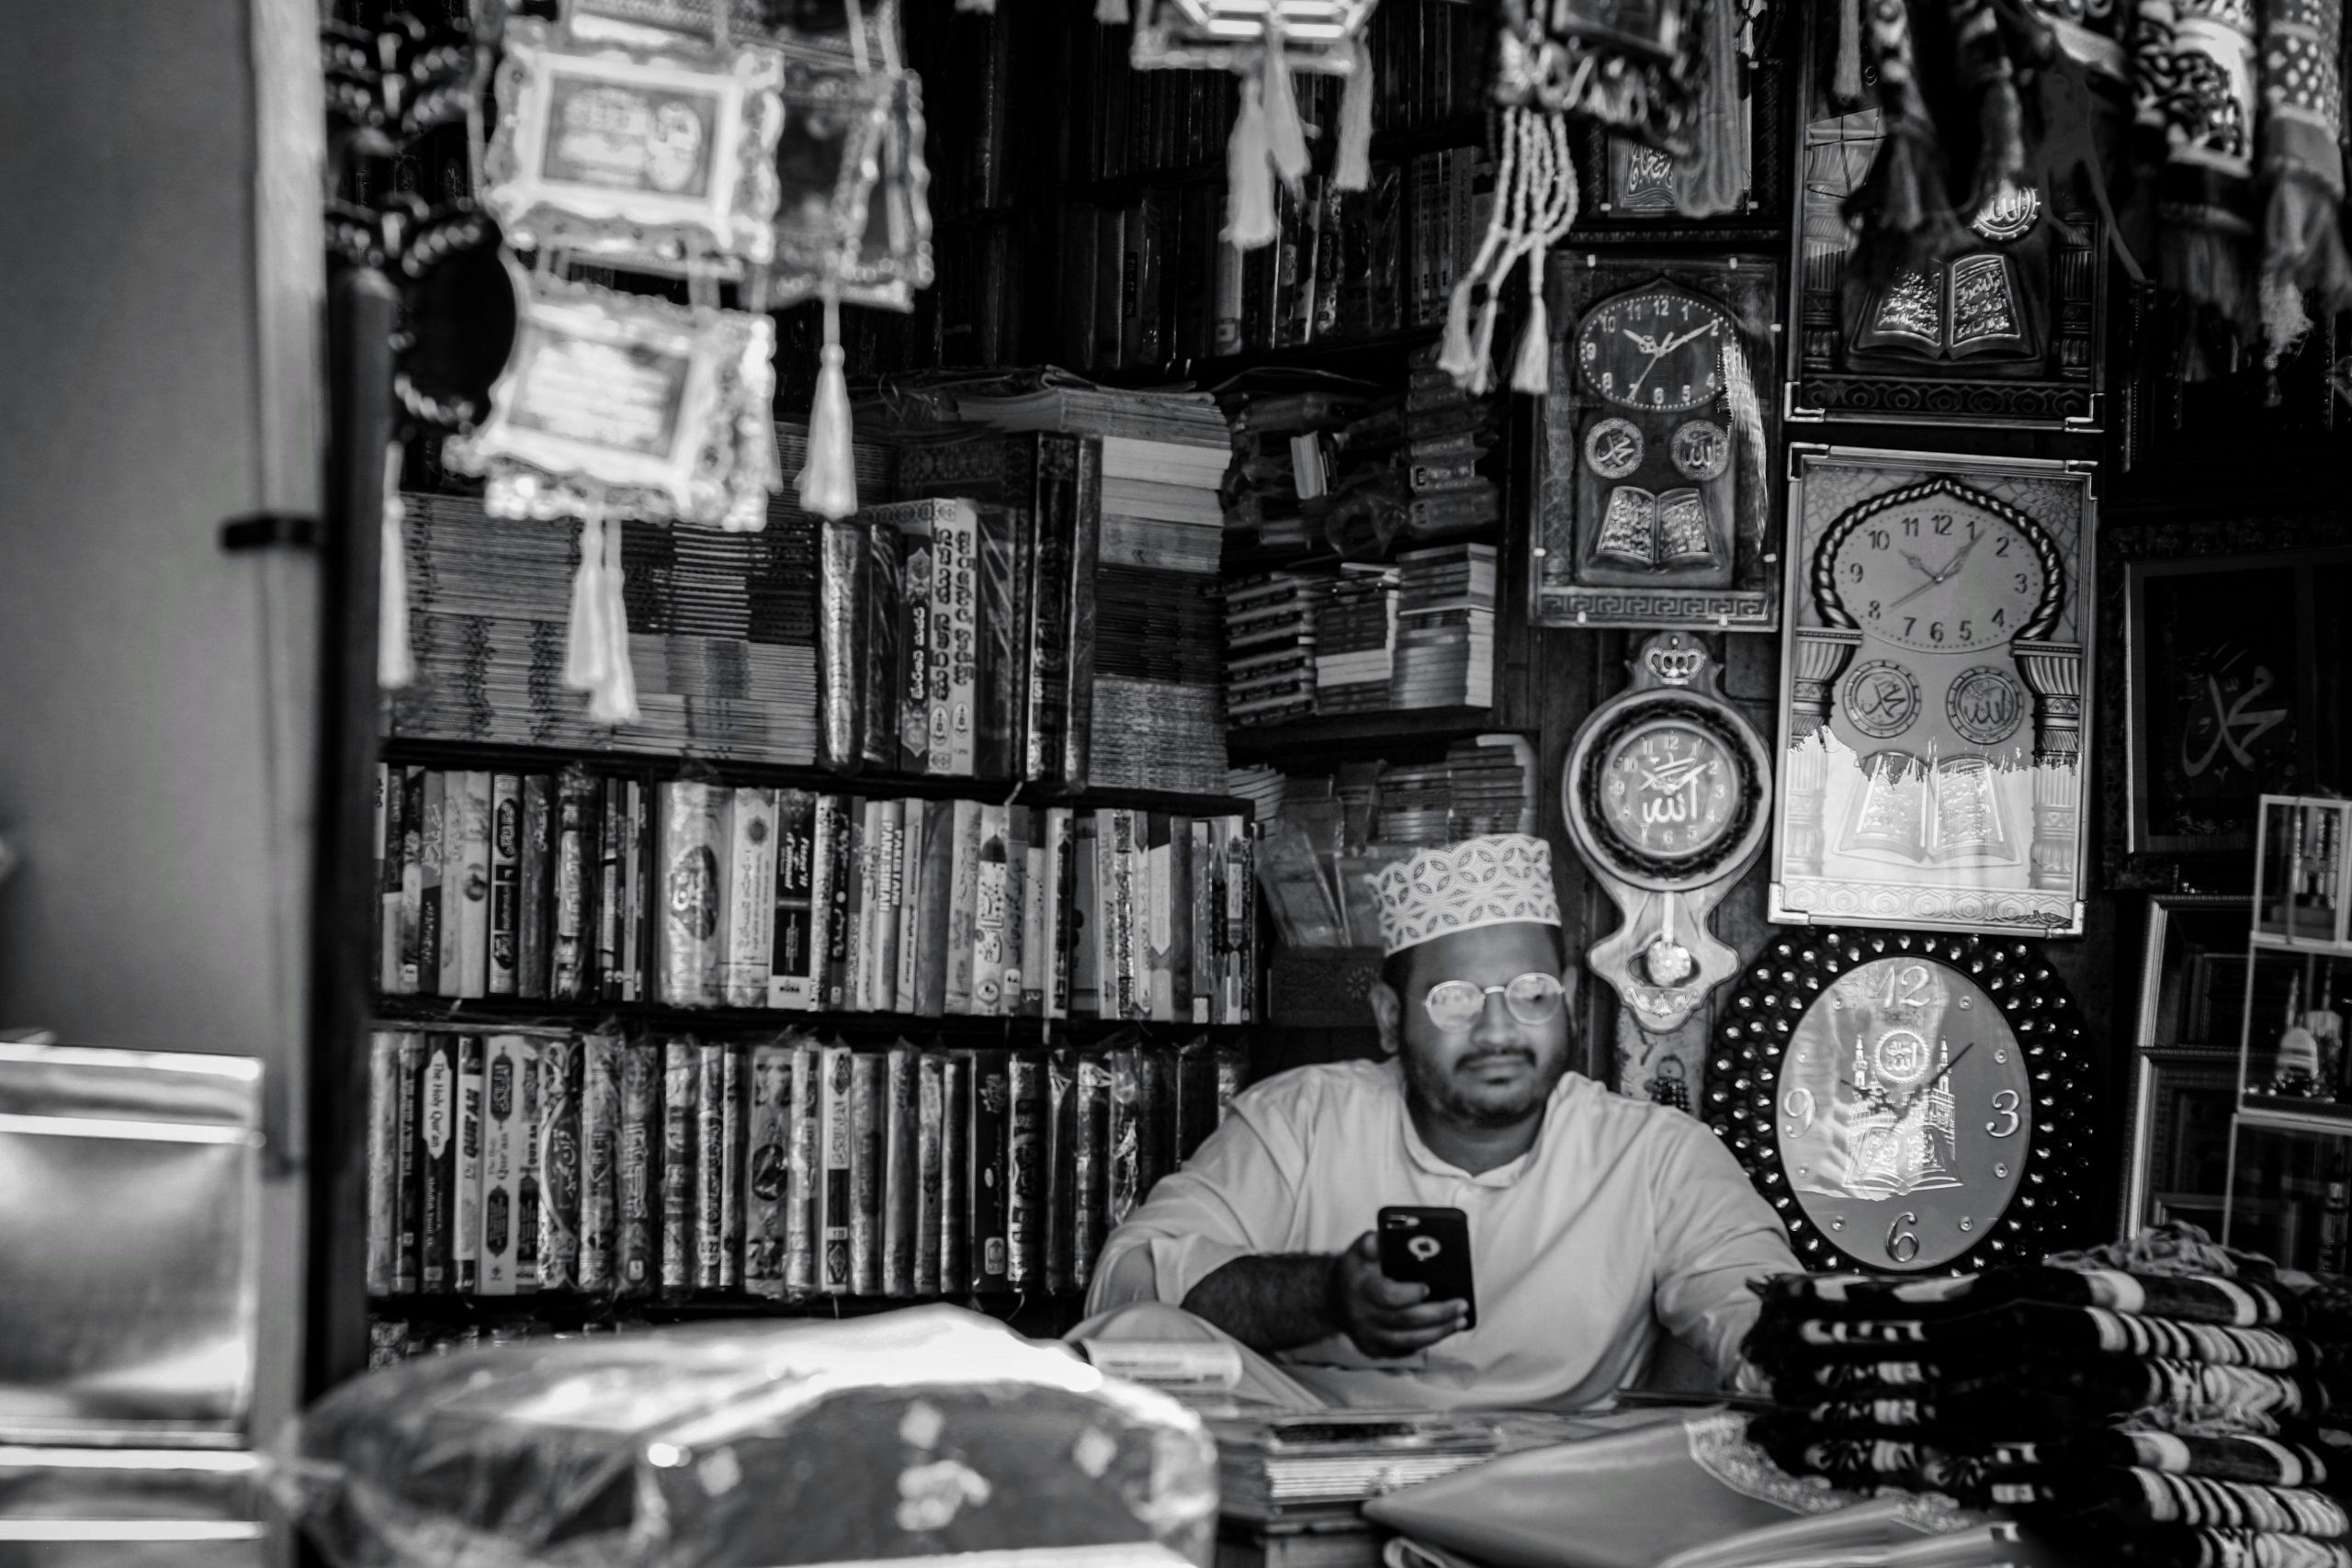 Shopkeeper watching over his merchandise